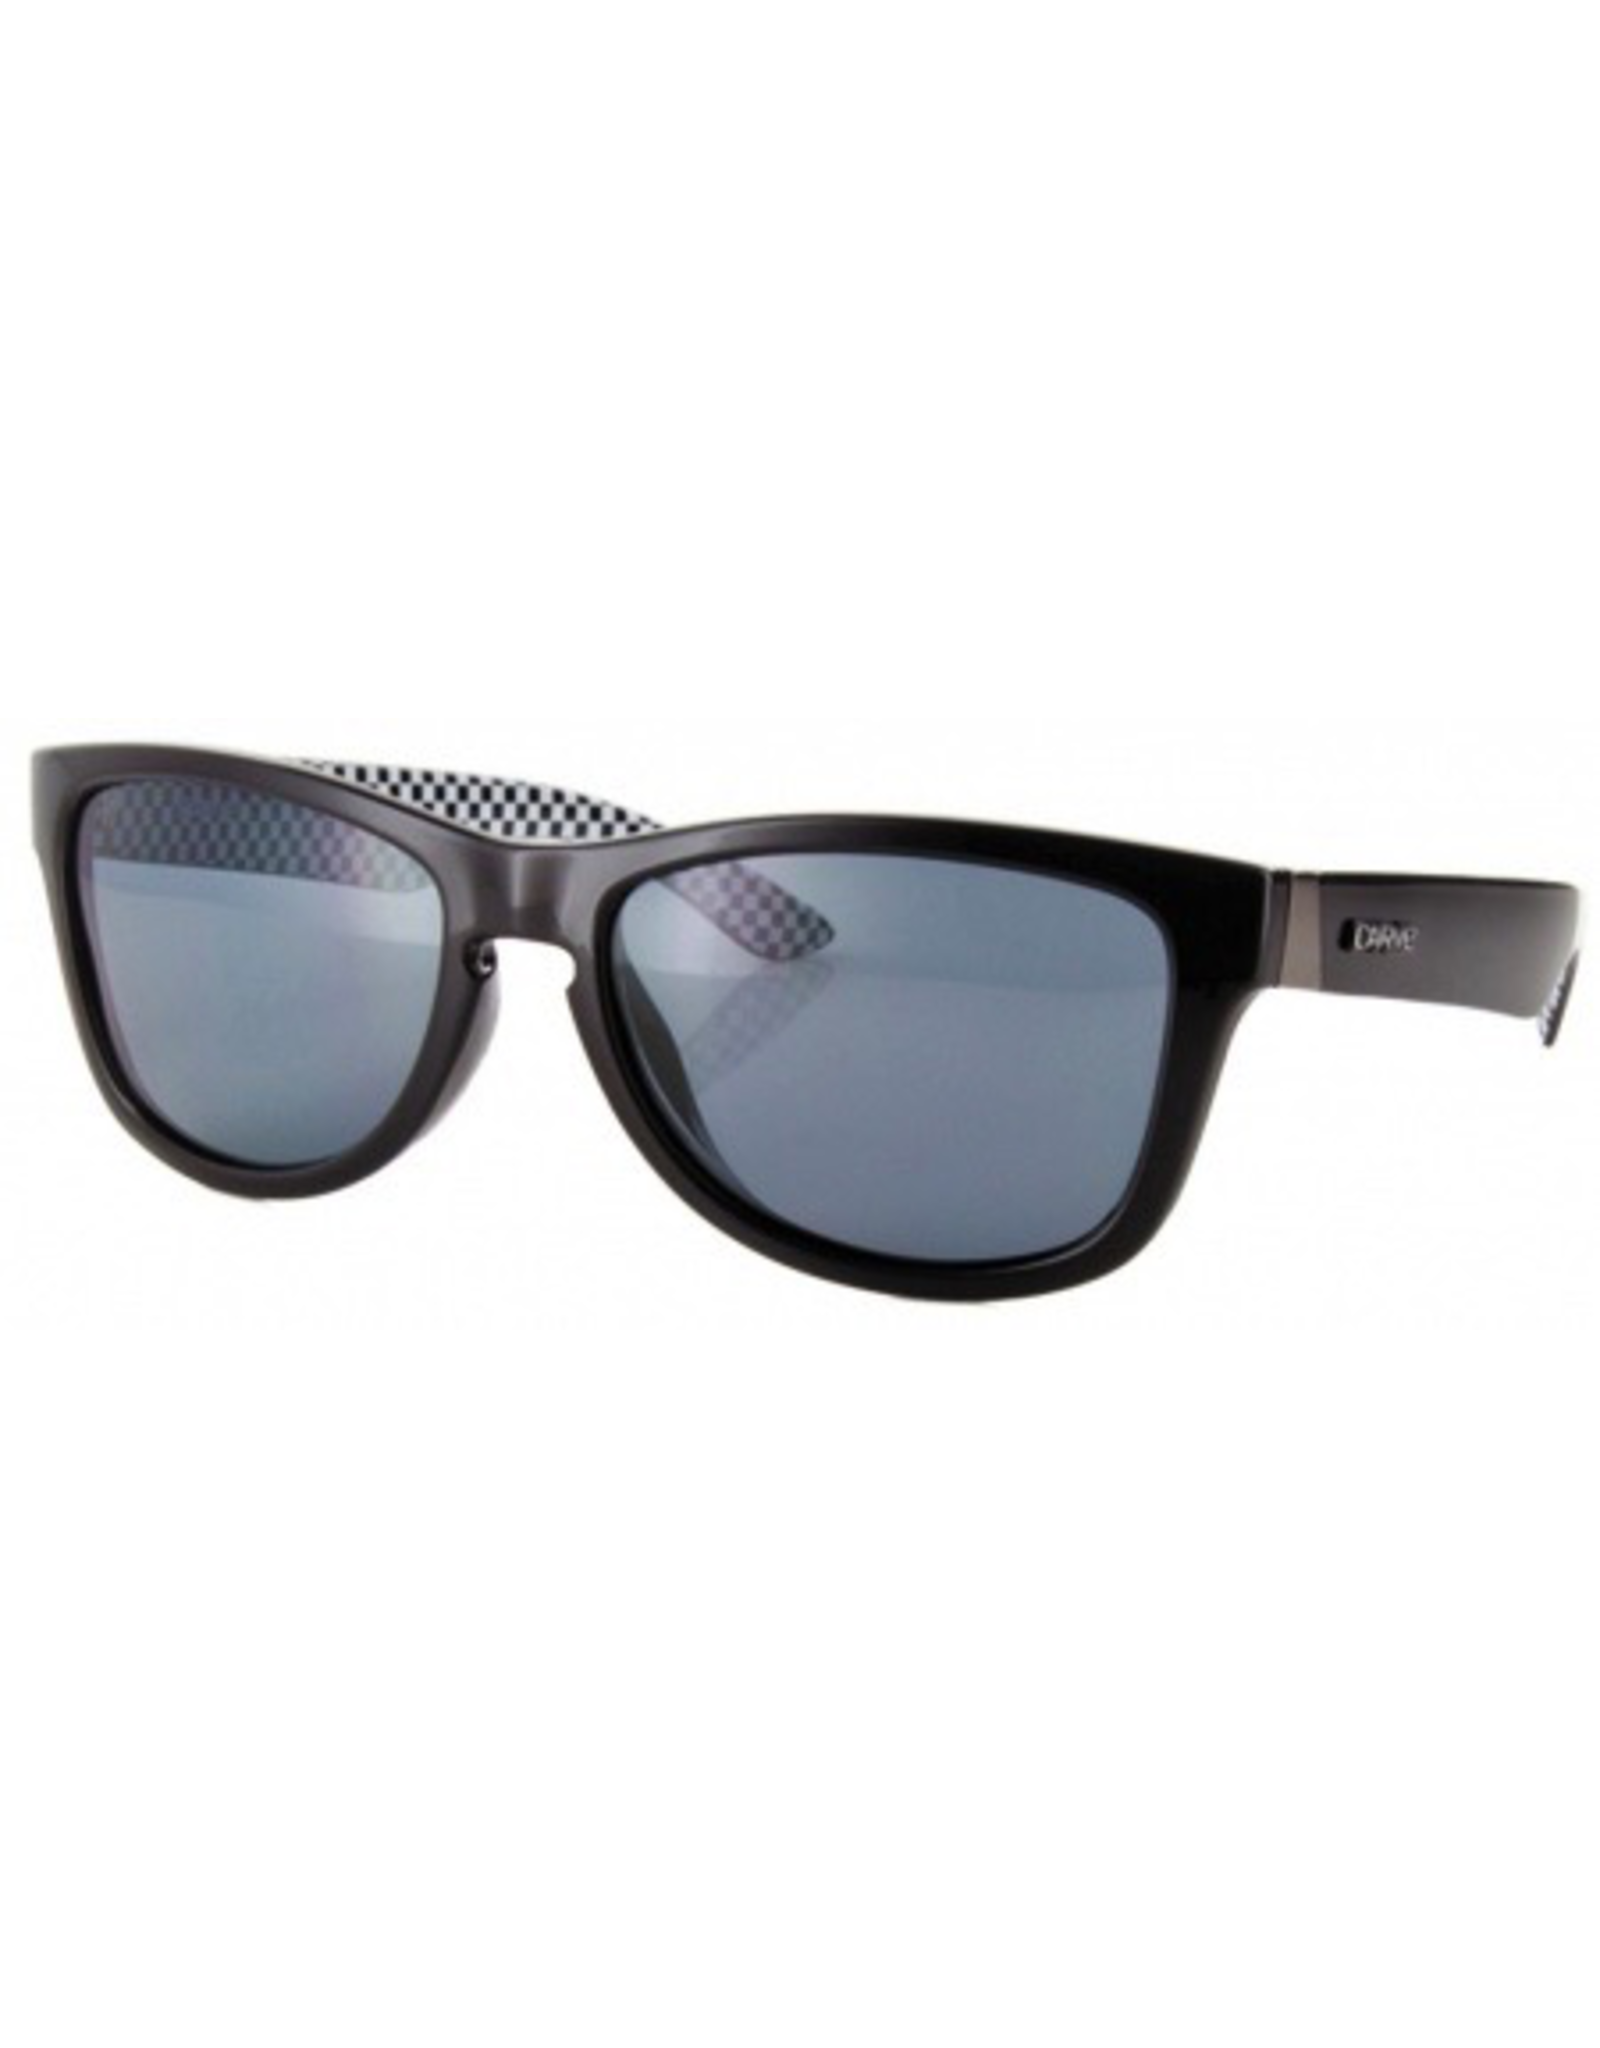 CARVE SUNGLASSES ONE STEP BEYOND POLARIZED GREY LENS